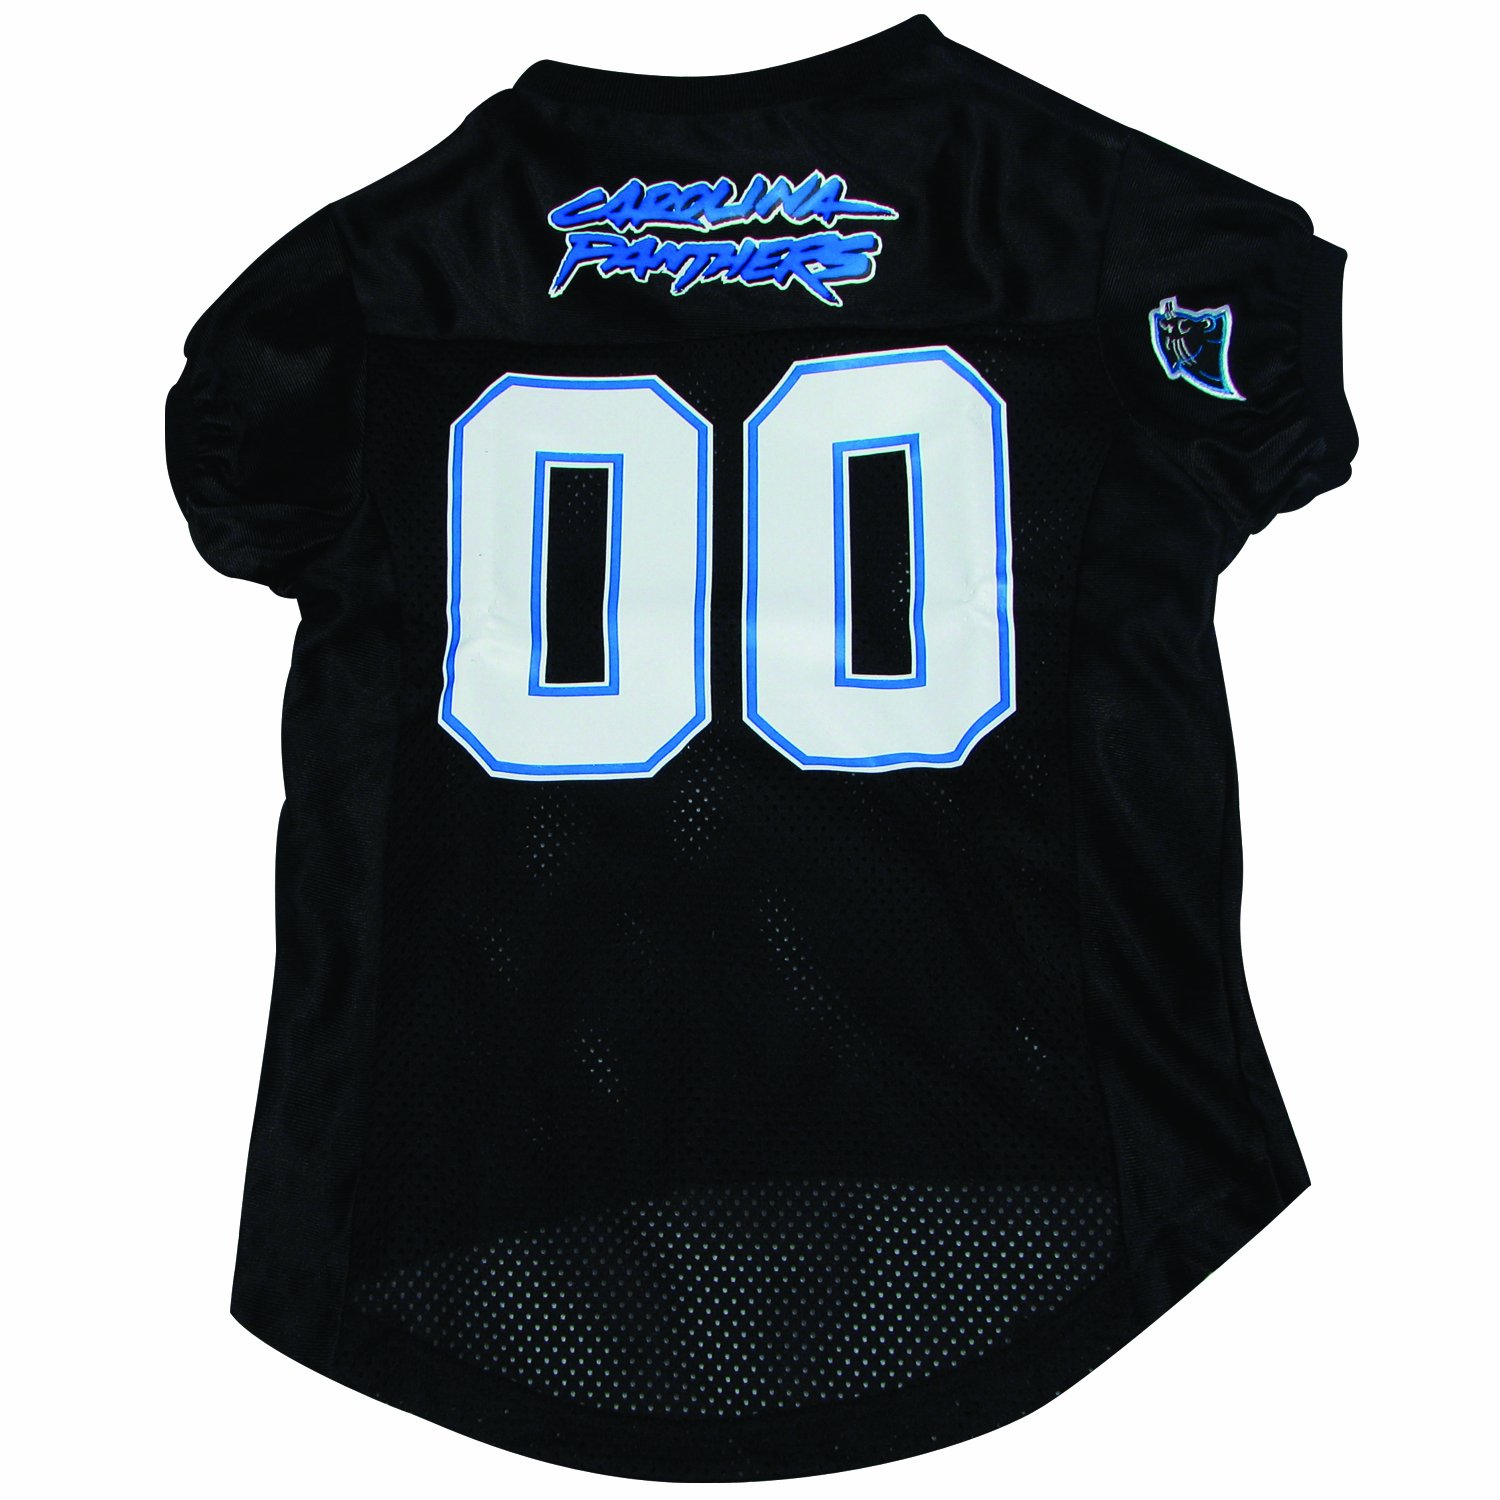 quality design e7bbe 3ccf5 NFL Carolina Panthers Pet Jersey